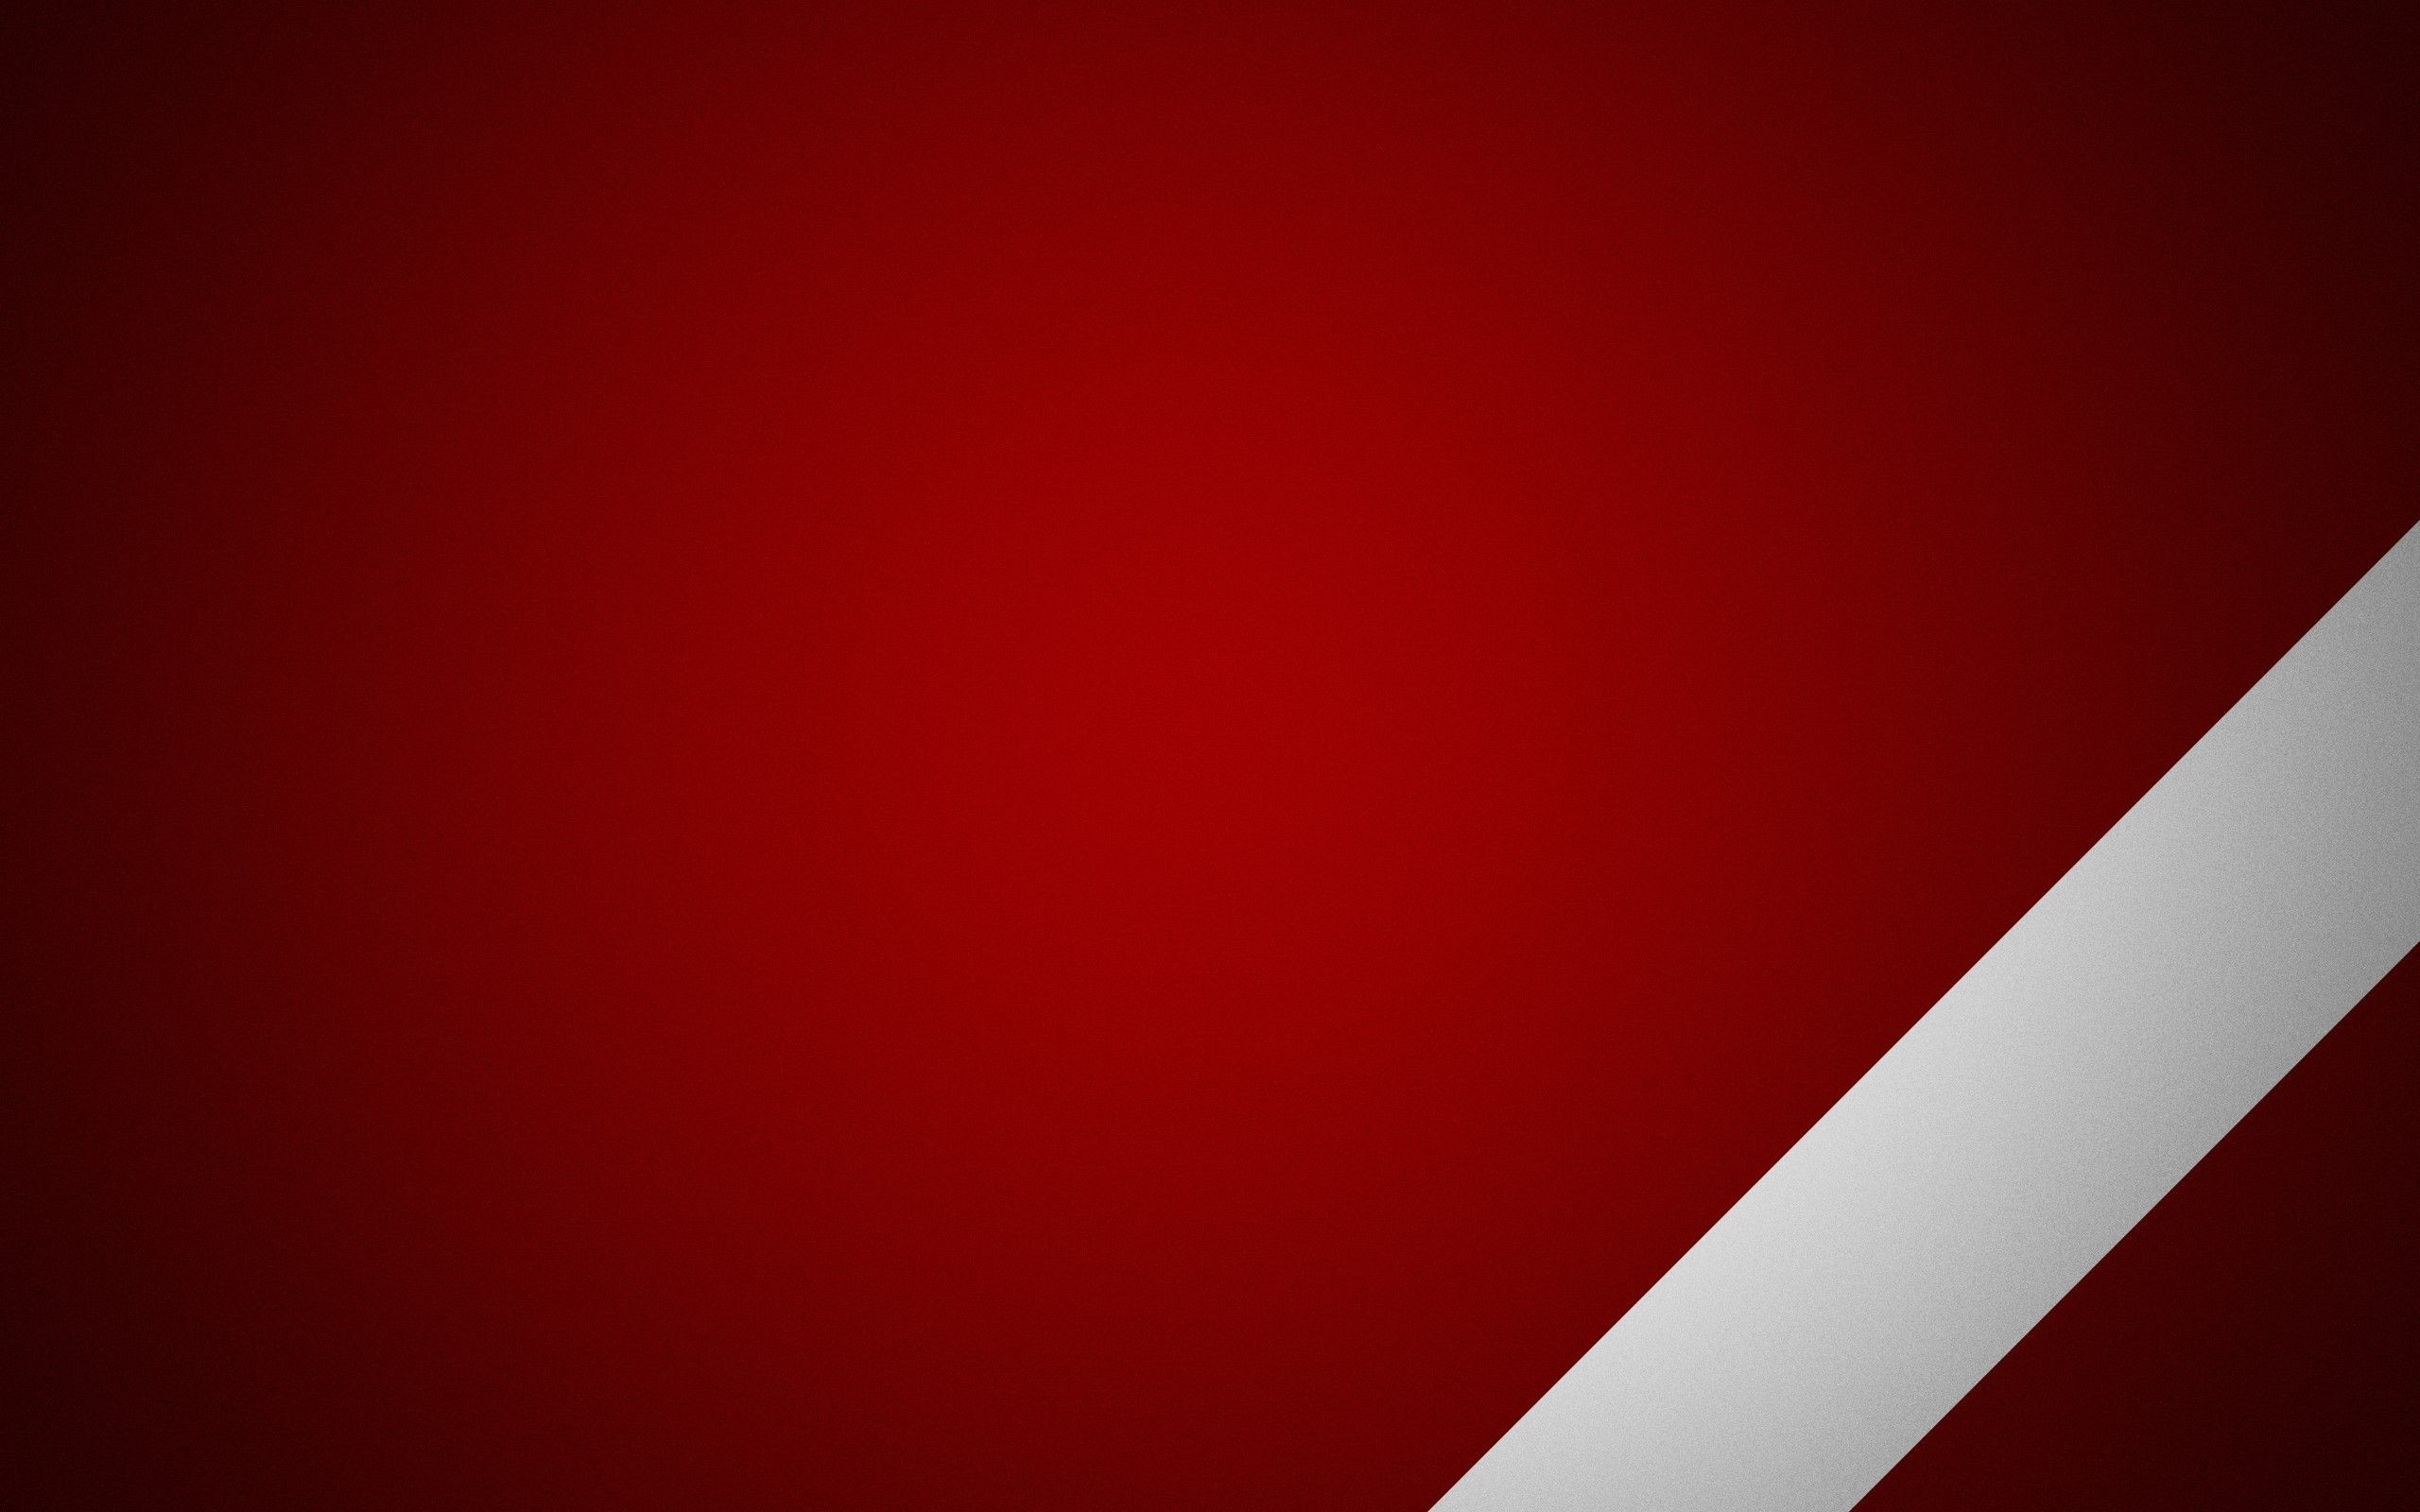 Red And White Wallpaper HD